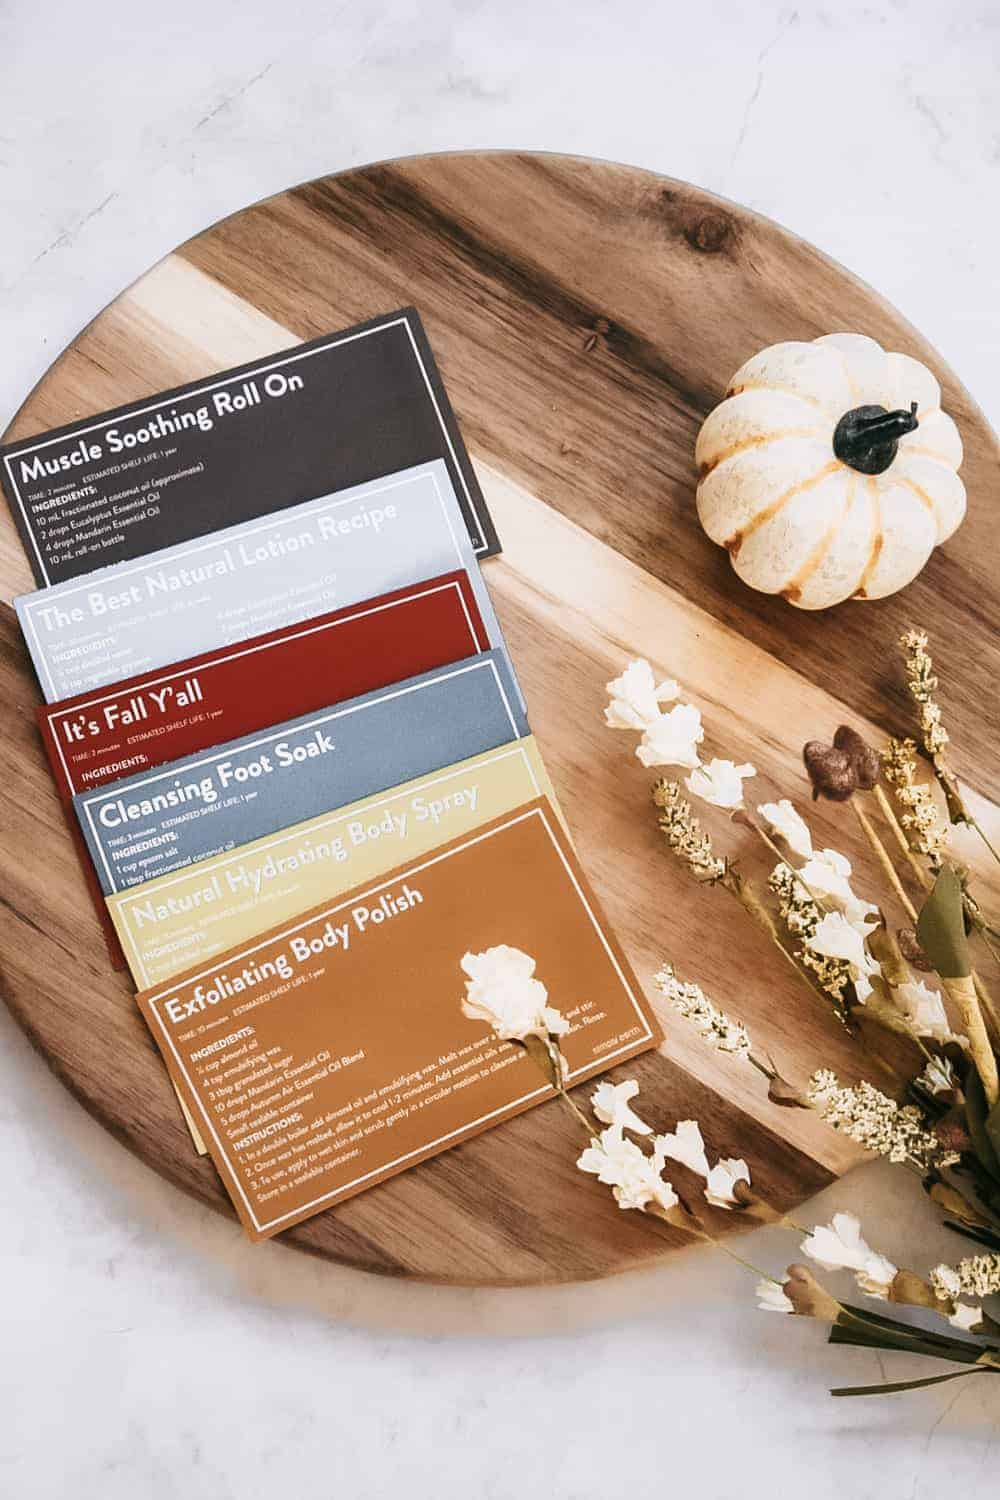 Simply Earth recipe cards laid out on a wooden cutting board next to small pumpkin and fall foliage